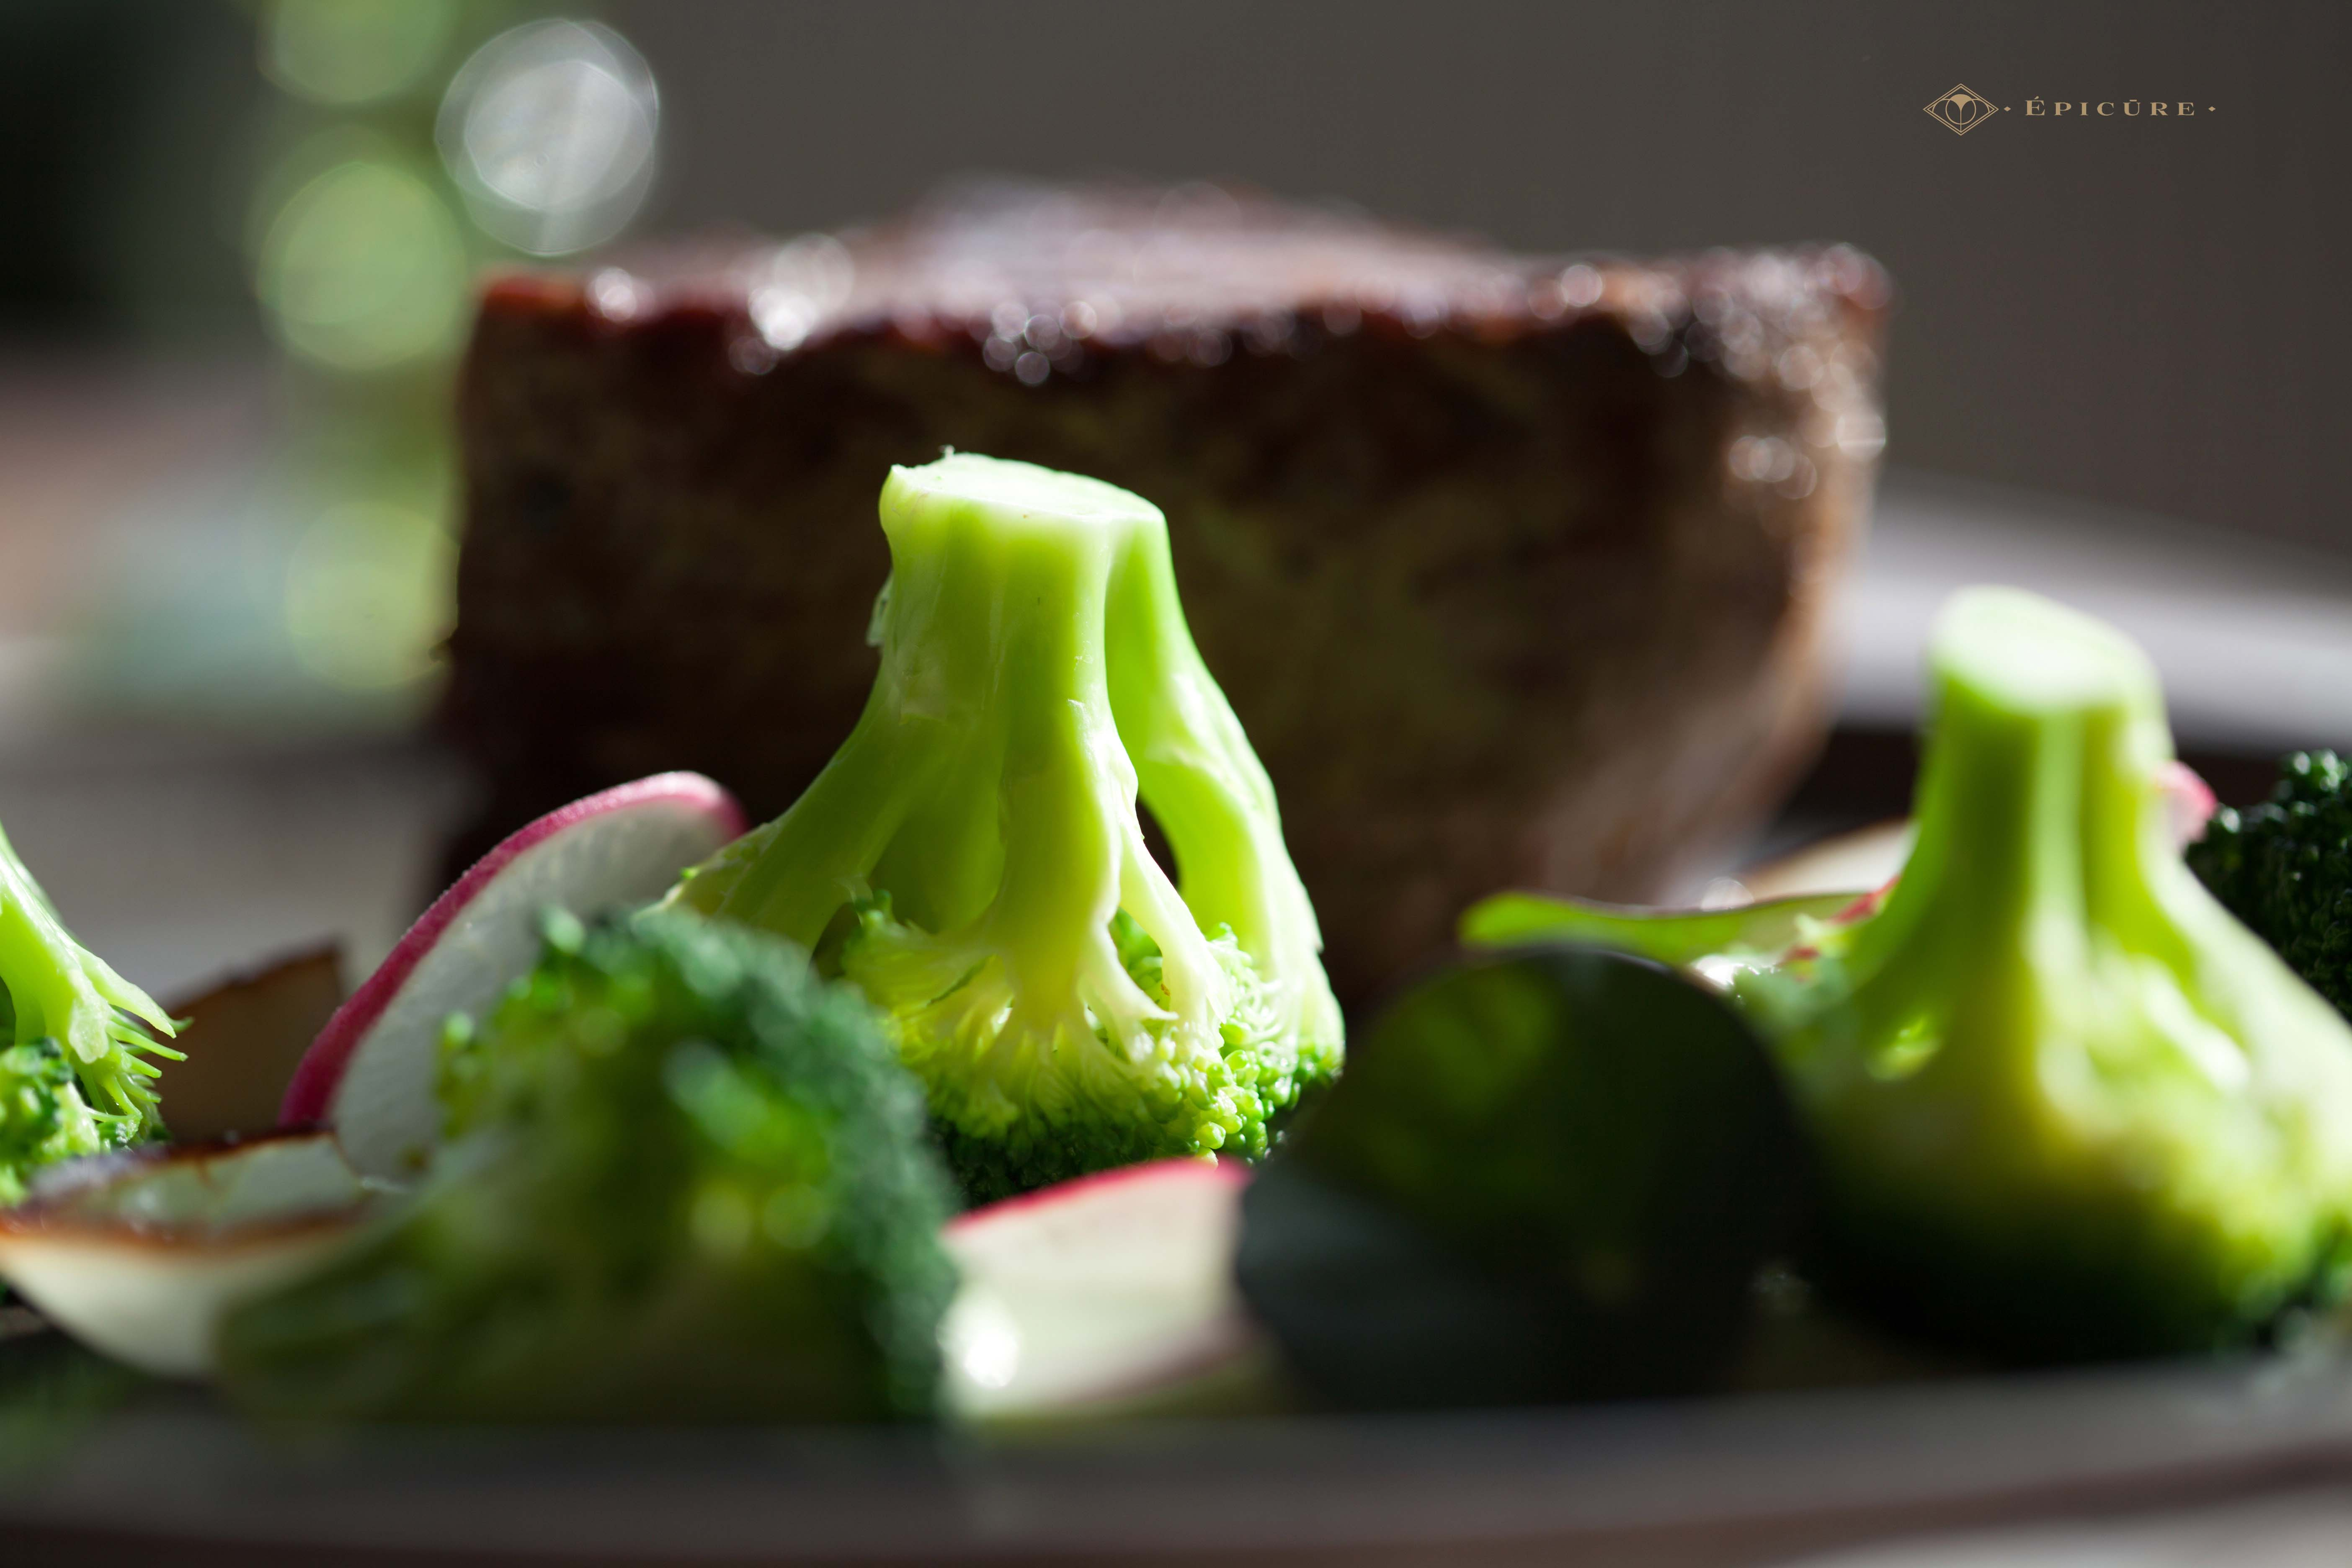 Beef filet with broccoli textures